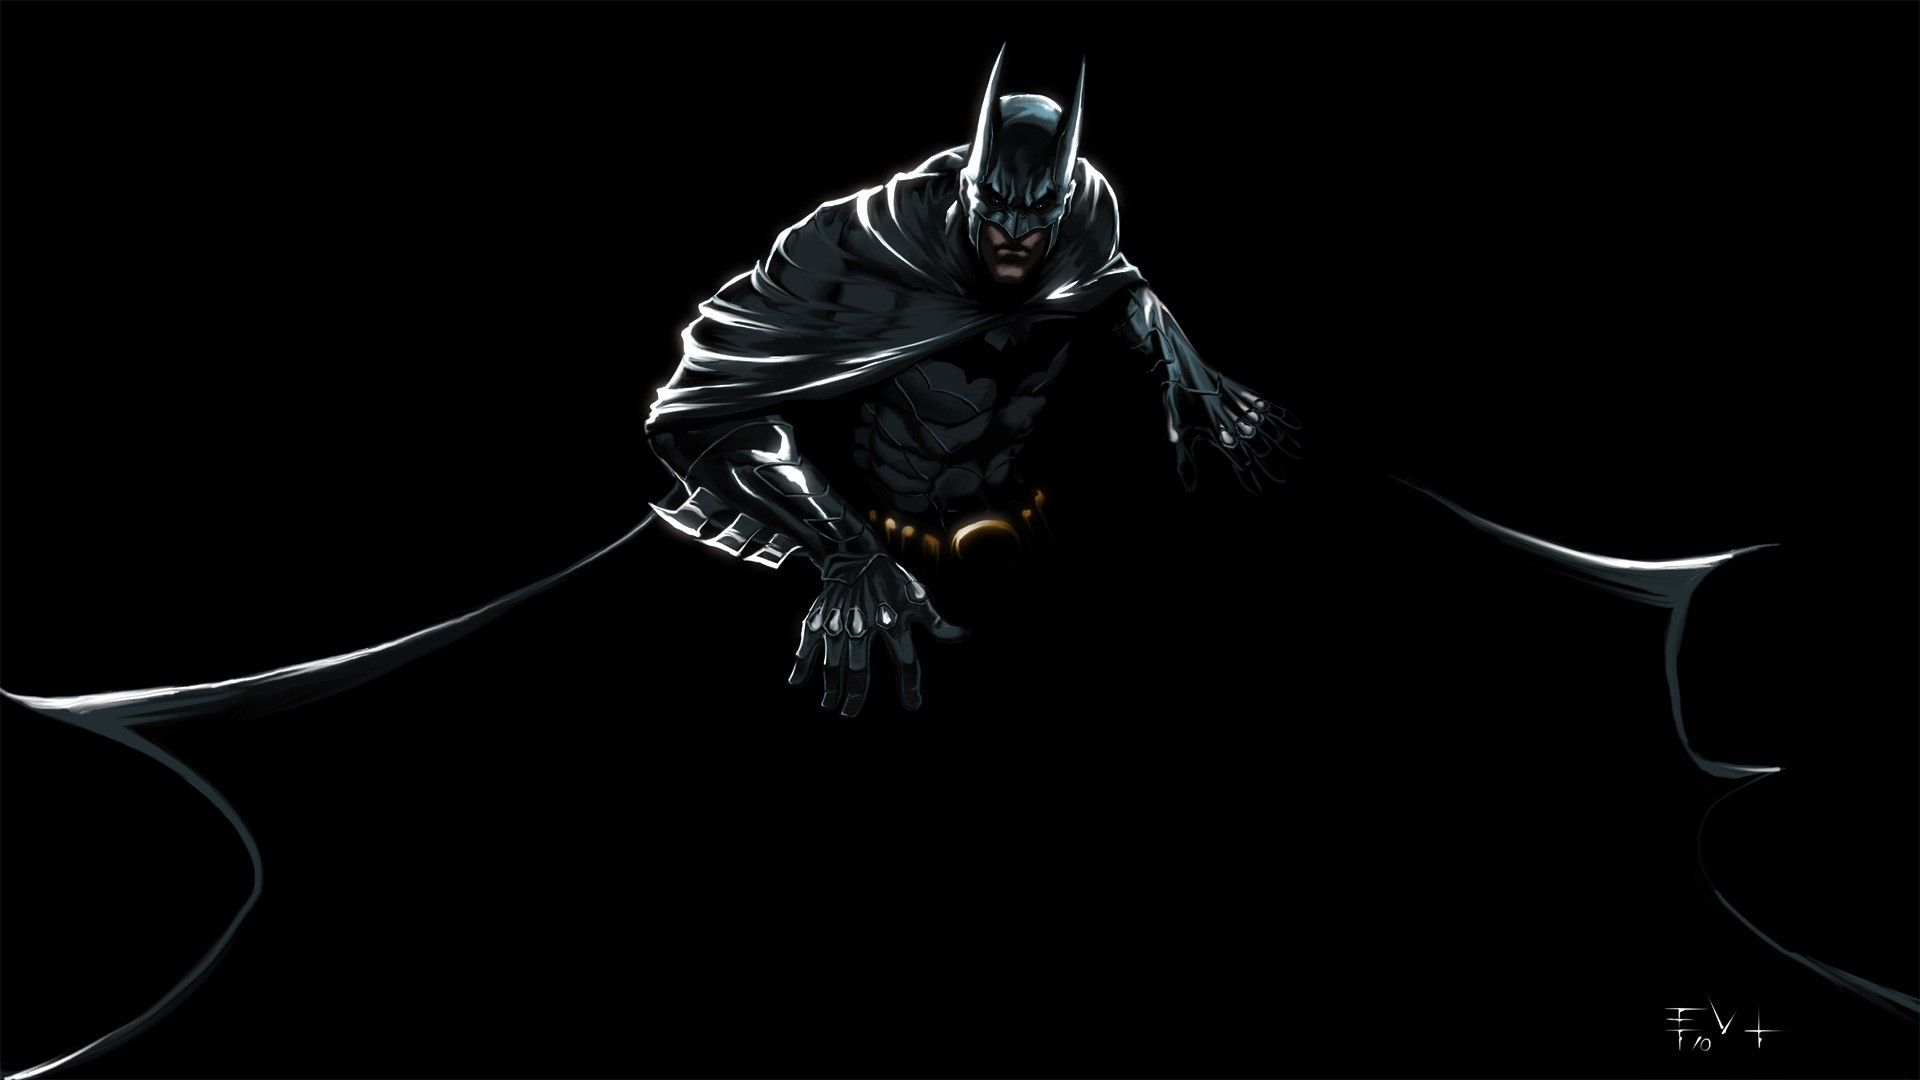 Batman Comics Wallpapers - Wallpaper Cave